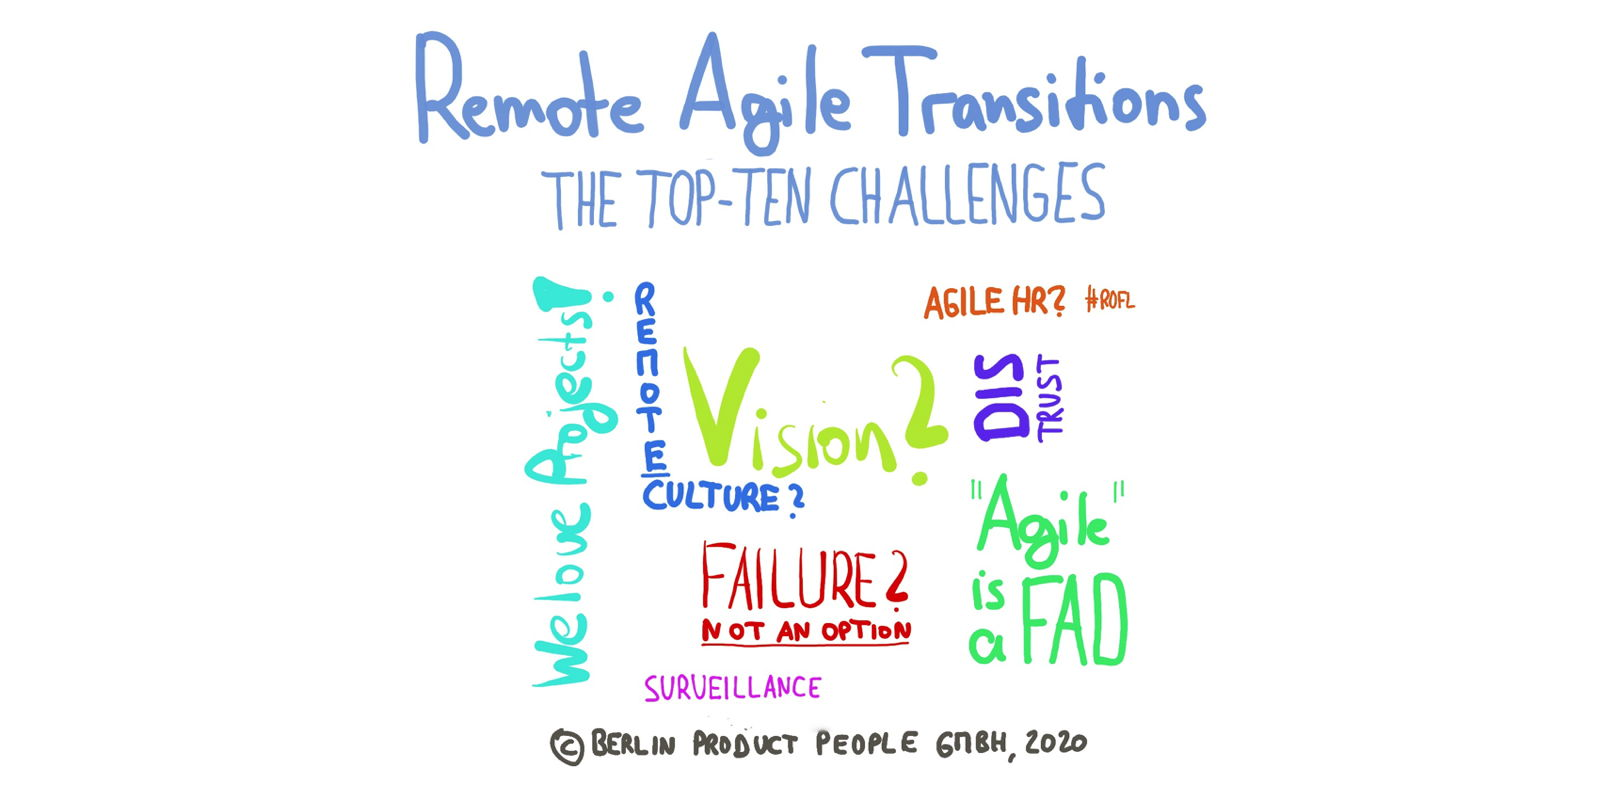 Remote Agile Transitions — The Top-Ten Challenges